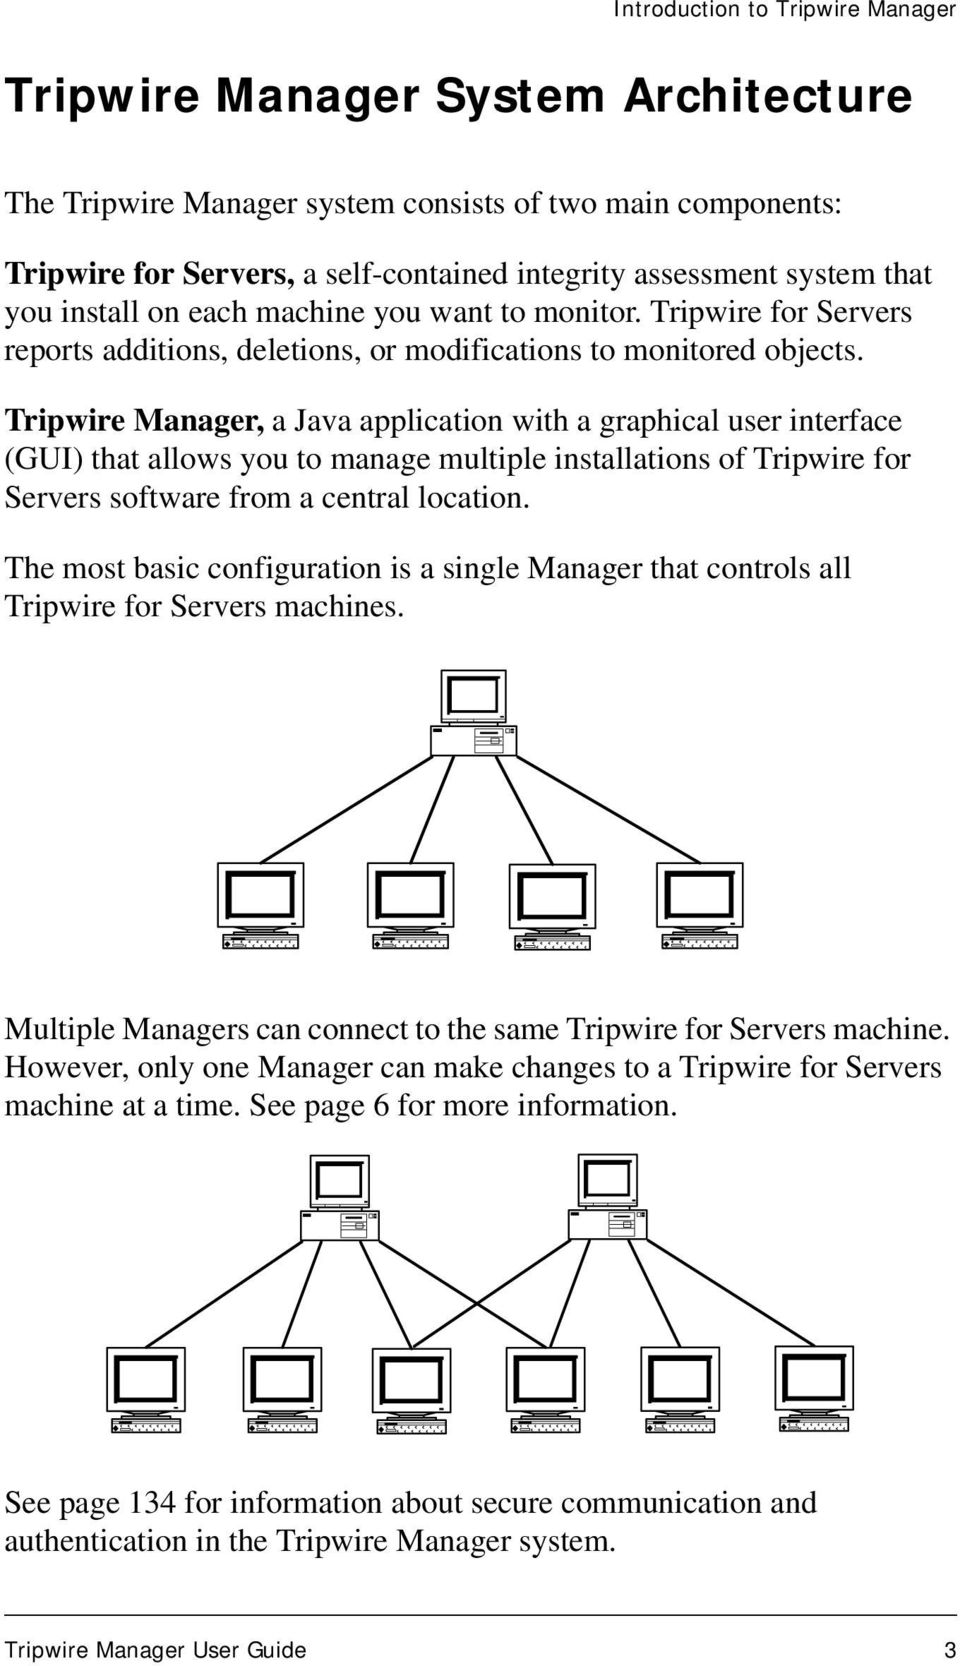 Tripwire Manager, a Java application with a graphical user interface (GUI) that allows you to manage multiple installations of Tripwire for Servers software from a central location.